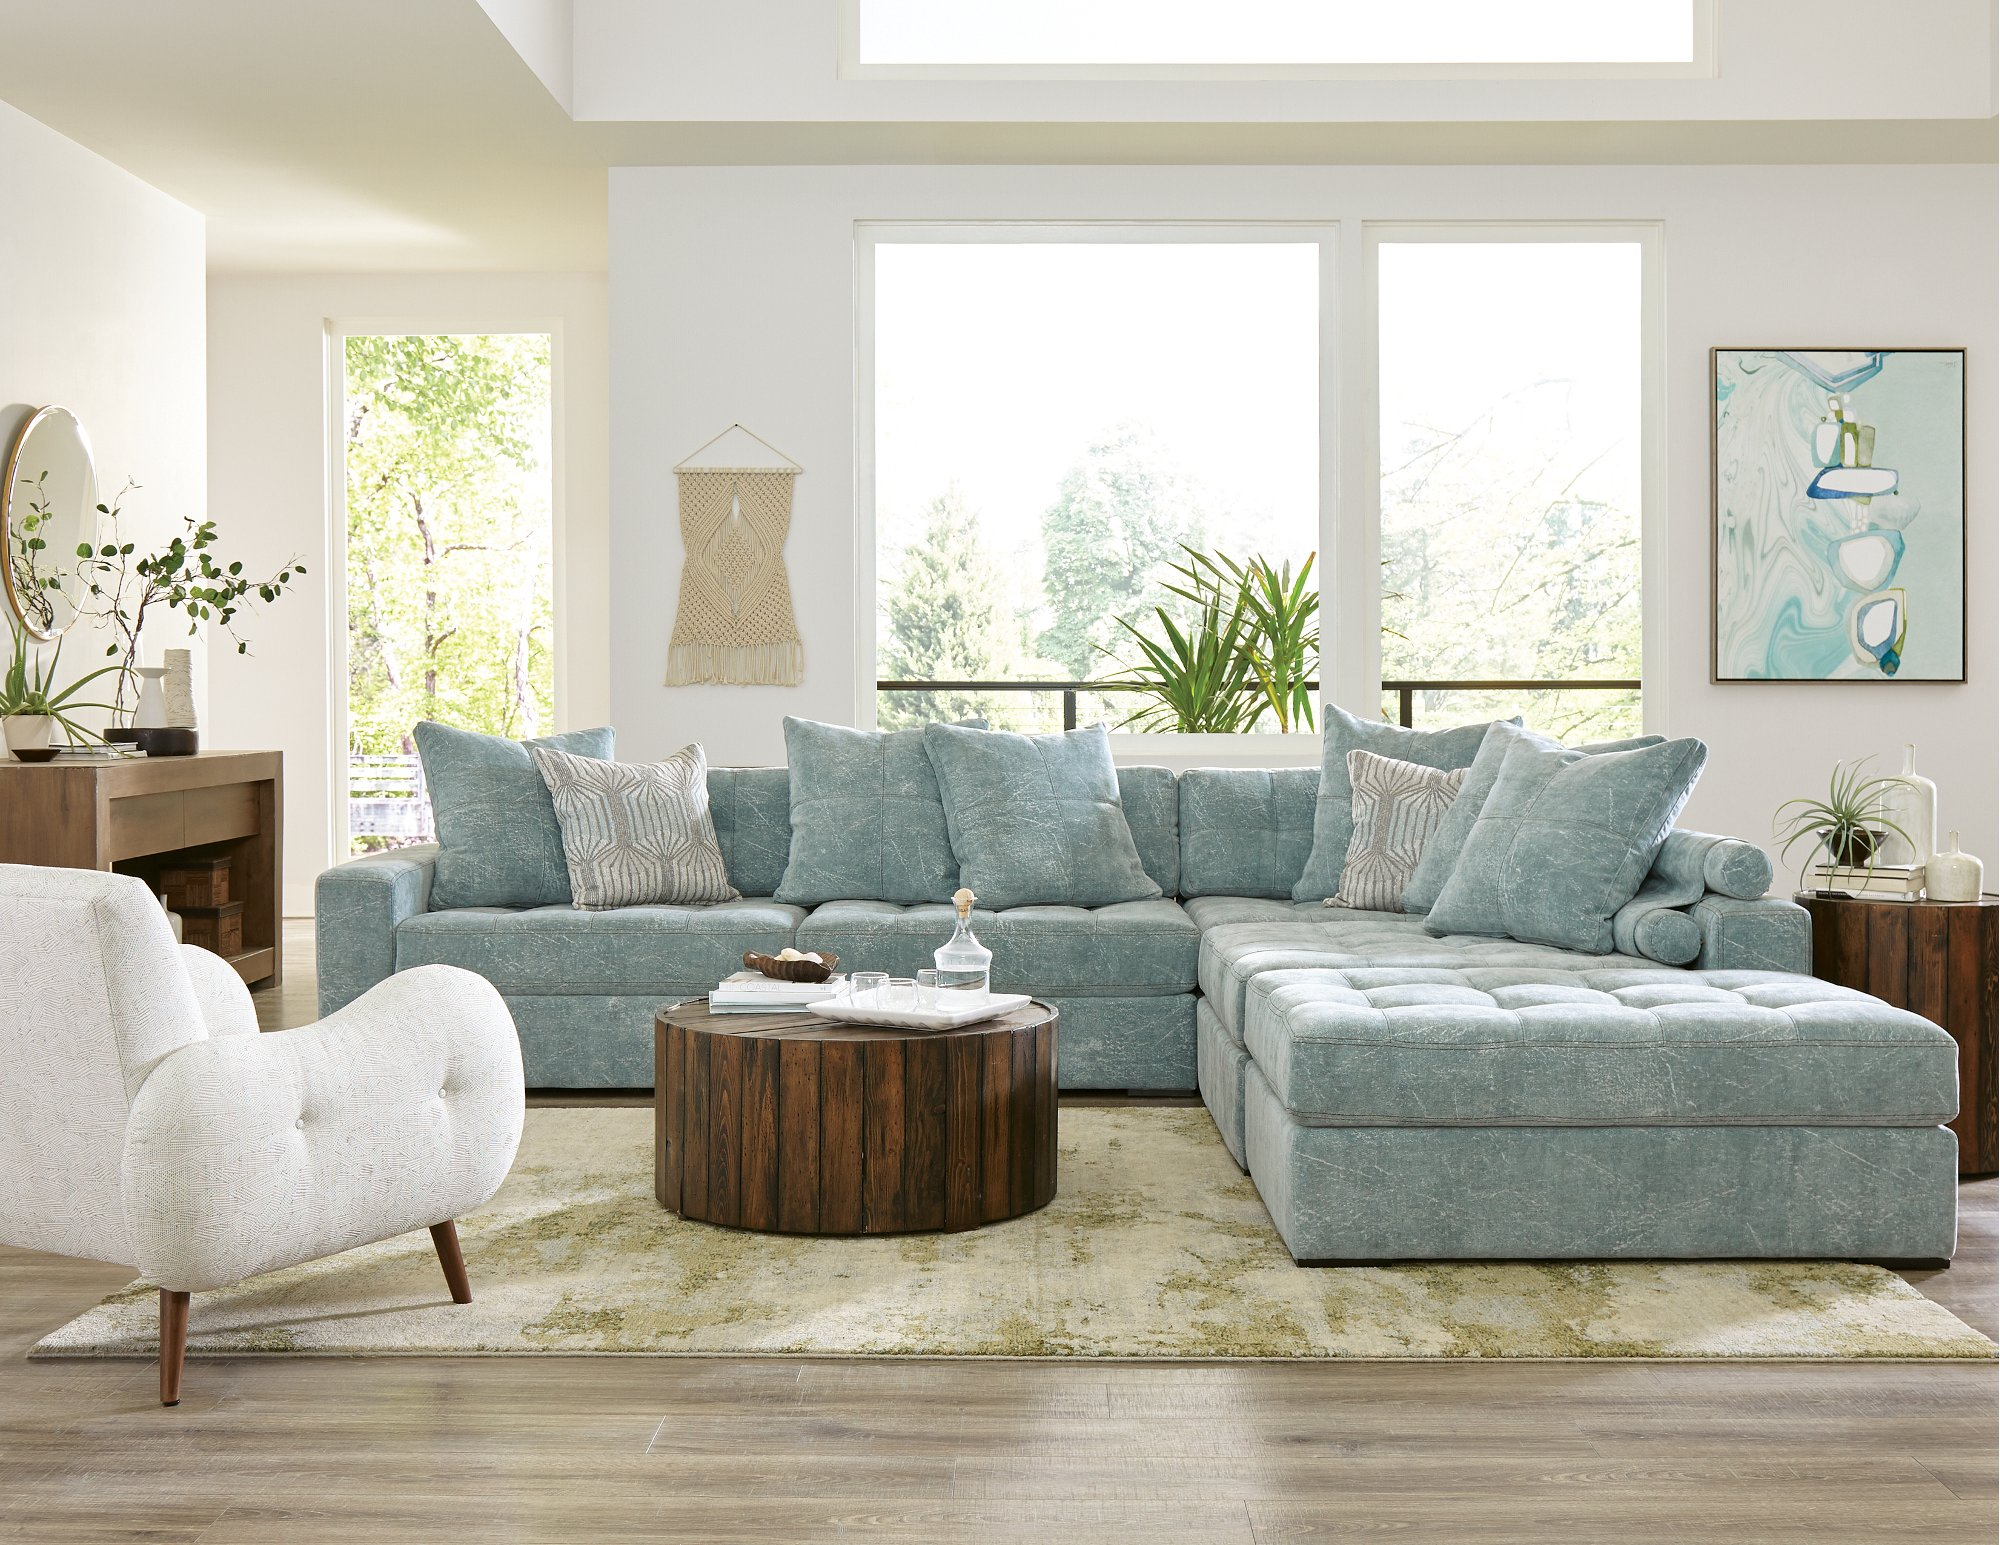 Modern French Blue 4 Piece Sectional Sofa Noah On R C Willey Ibt Shop